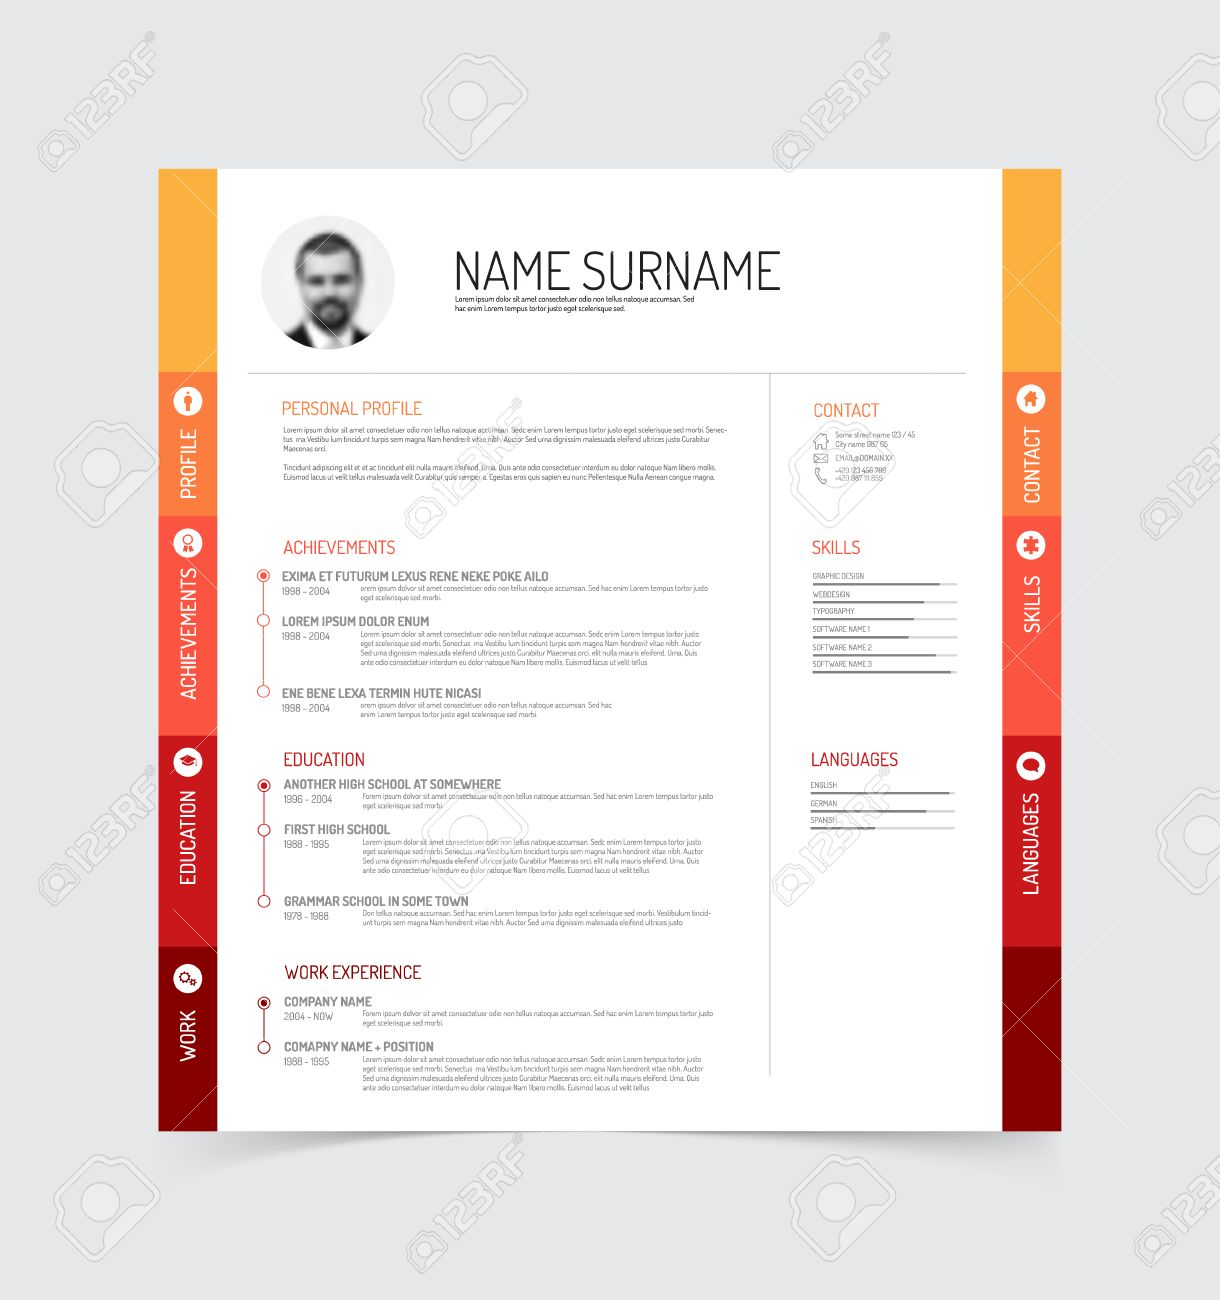 Minimalist Cv Resume Template Royalty Free Cliparts Vectors And